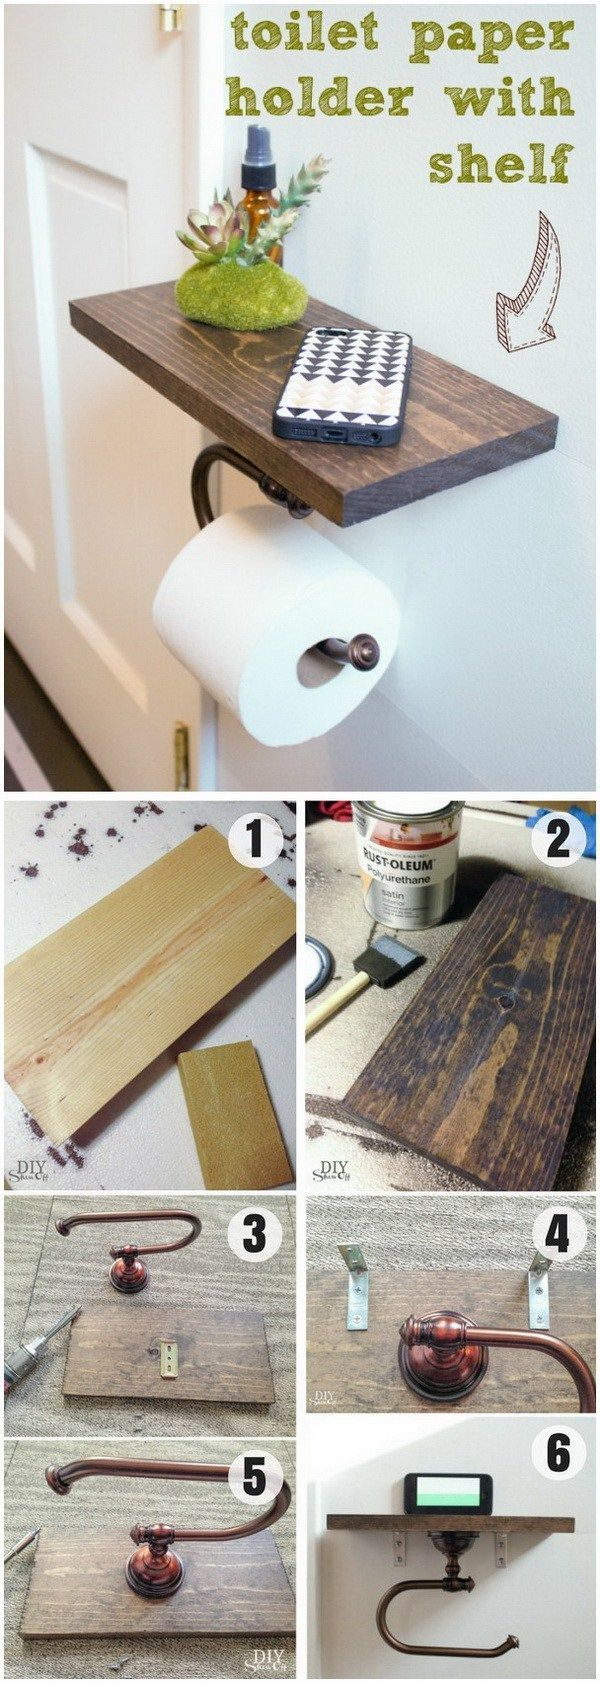 Rustic DIY Projects to add Warmth to your Farmhouse Decor images